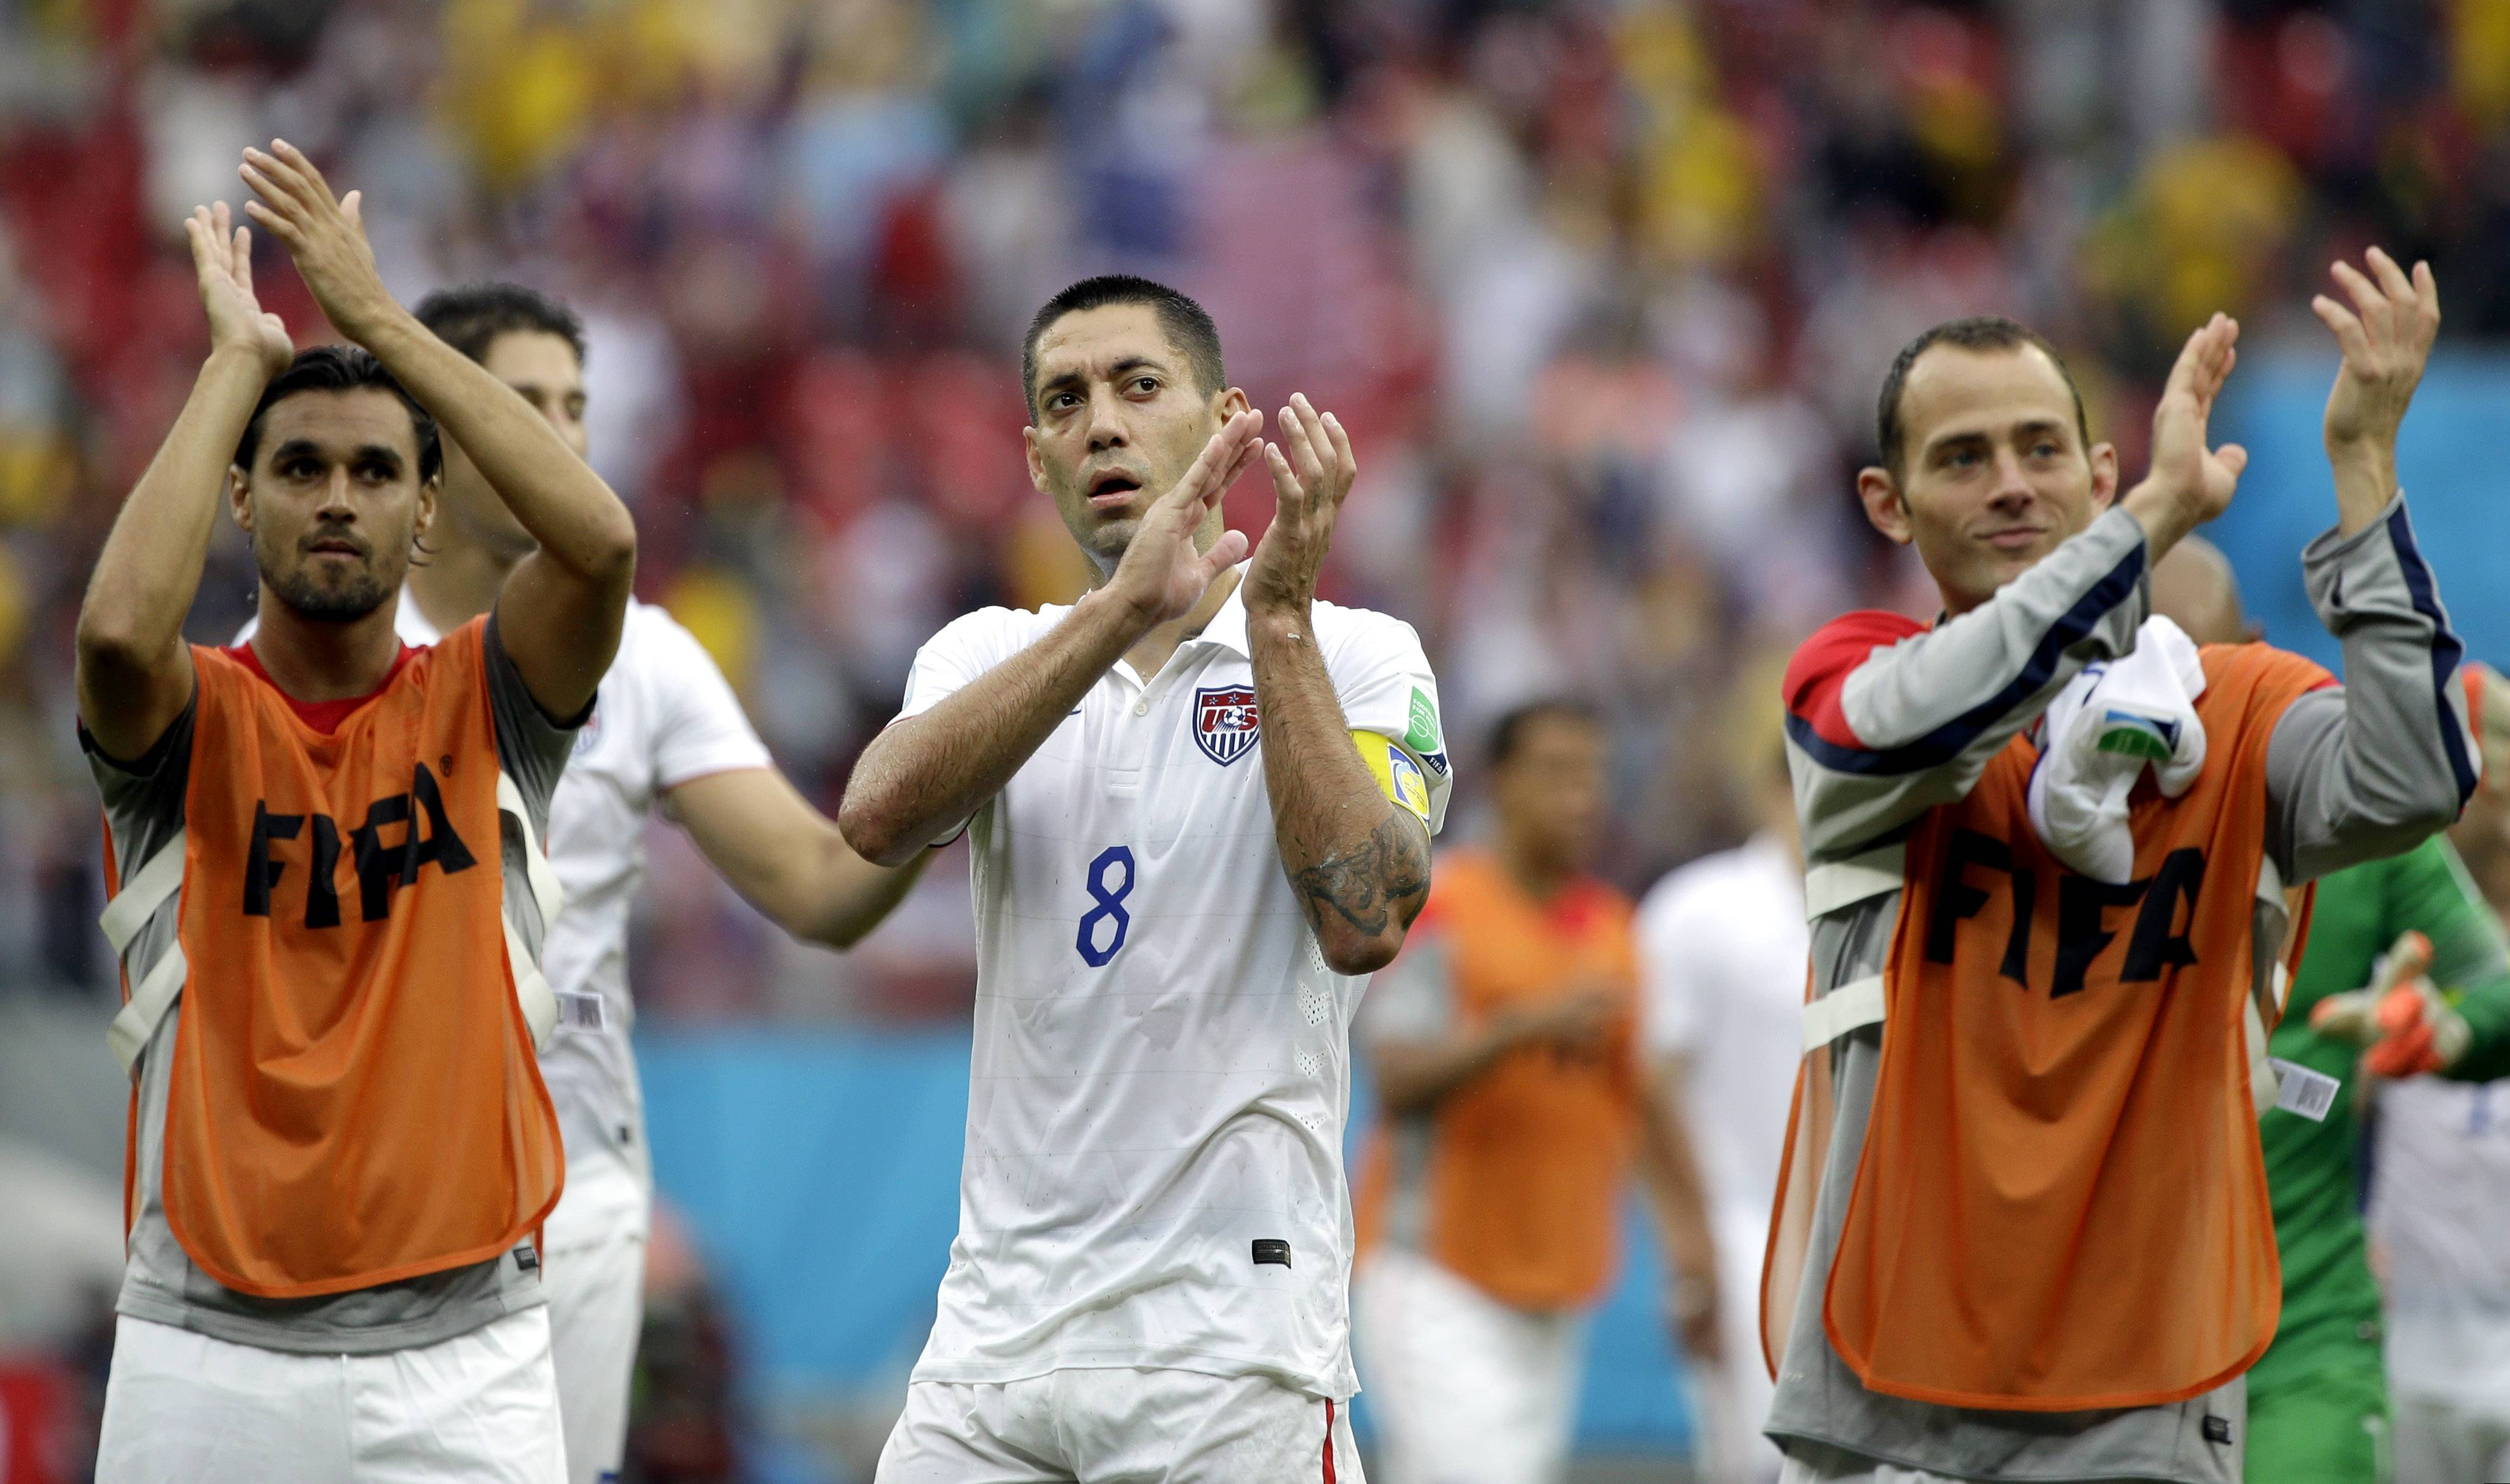 United States' Clint Dempsey, center, and his teammates applaud after qualifying for the next World Cup round following their 1-0 loss to Germany during the group G World Cup soccer match between the USA and Germany at the Arena Pernambuco in Recife, Brazil, Thursday, June 26, 2014.